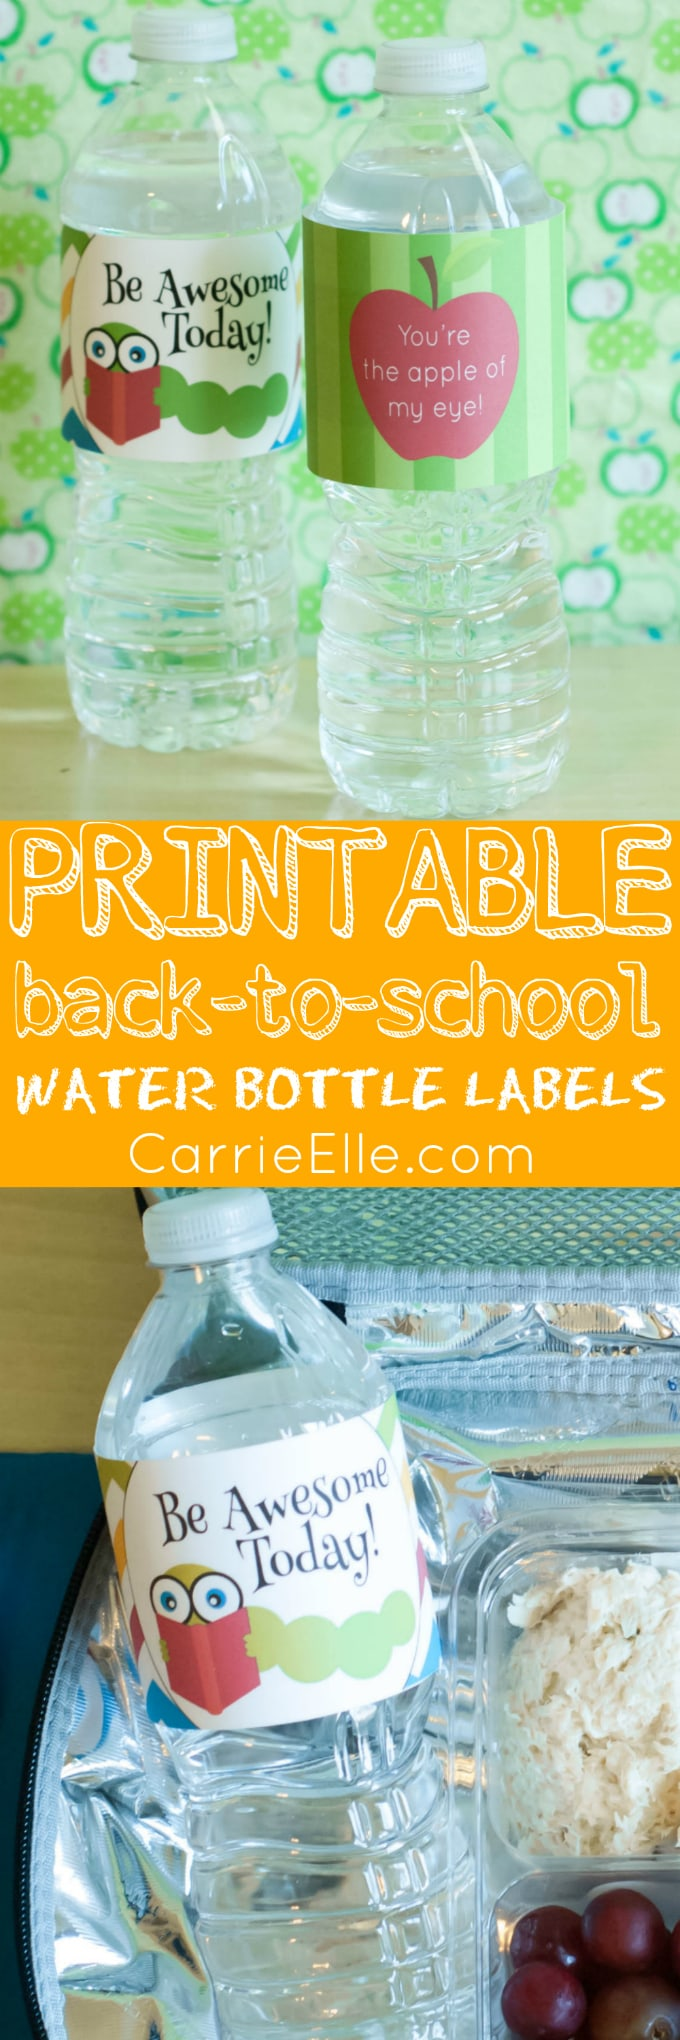 Printable Back-to-School Water Bottle Labels